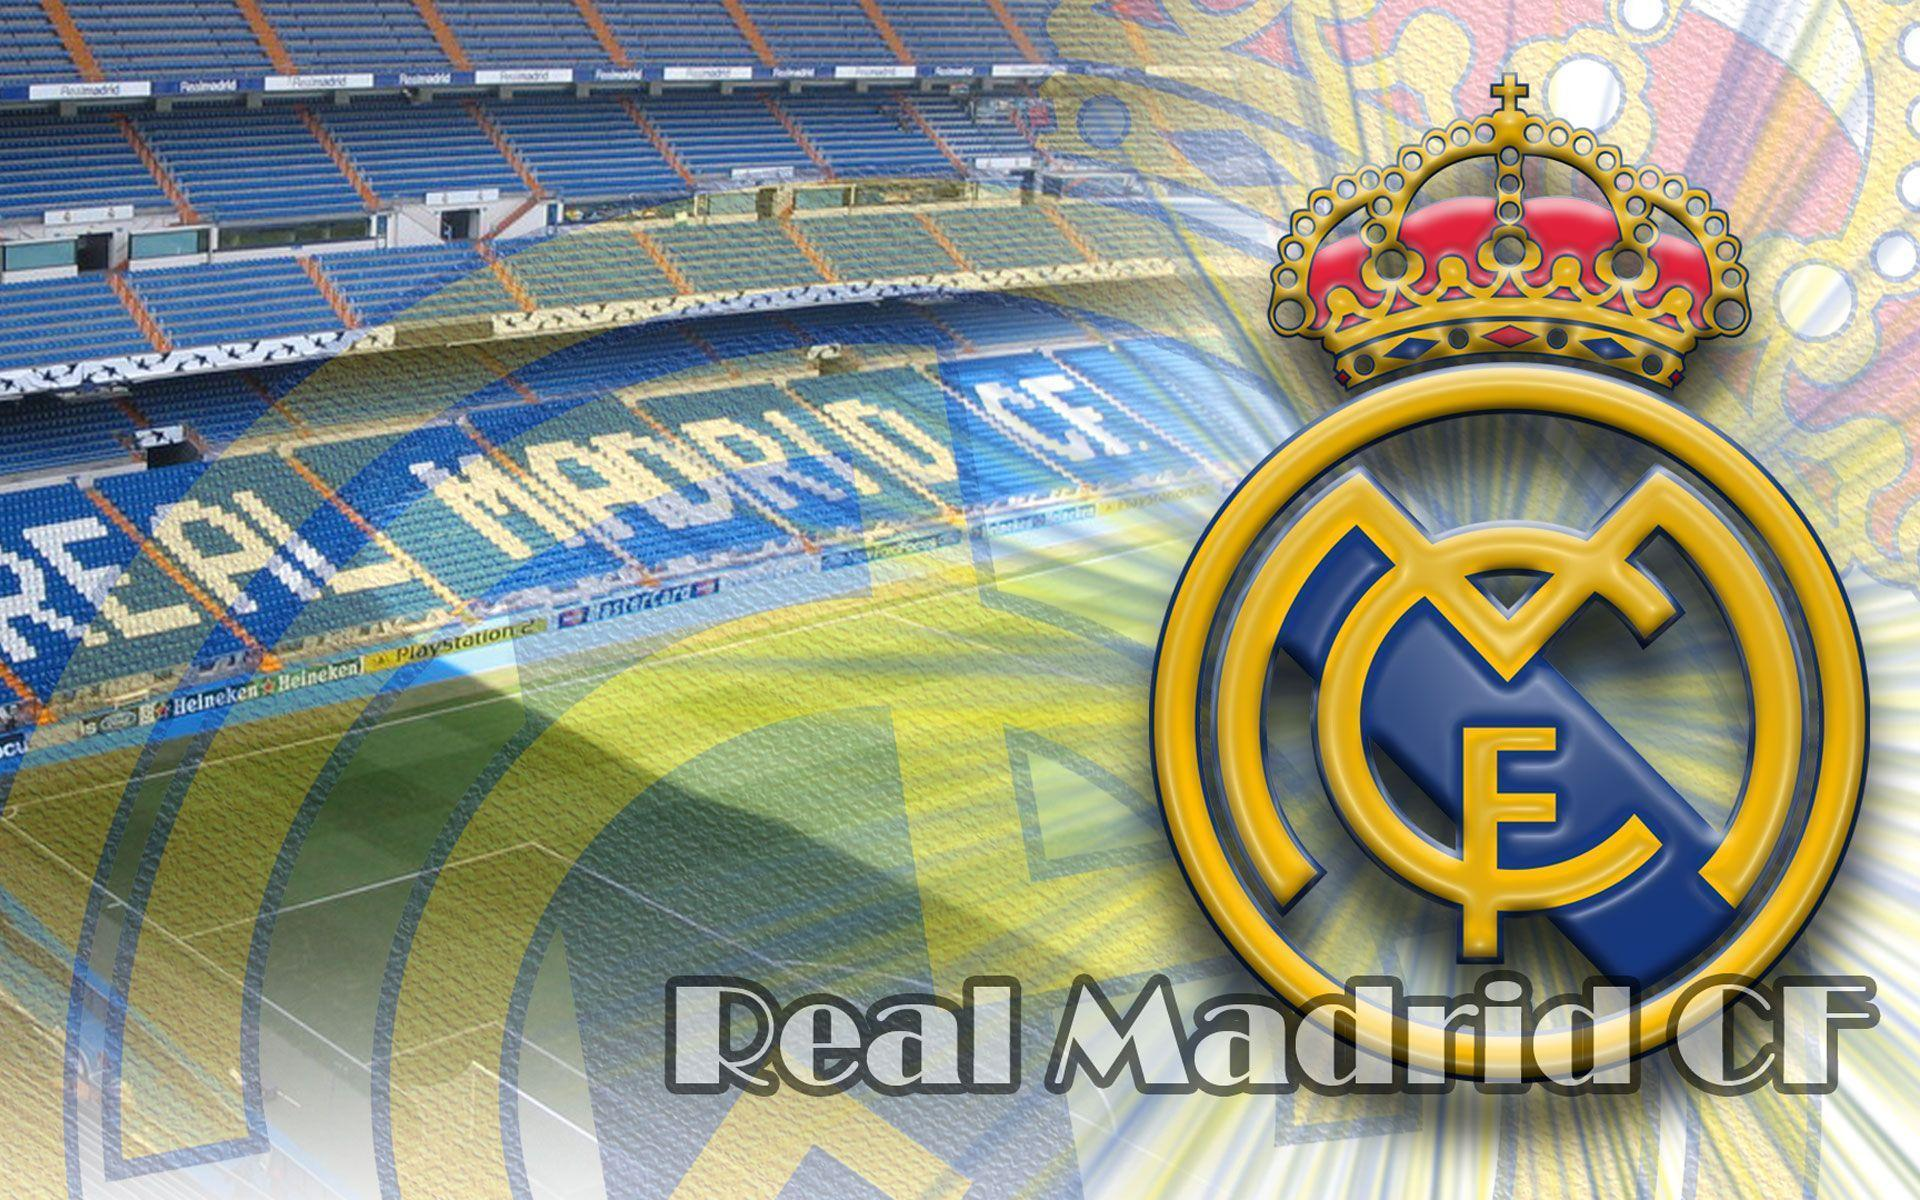 1920x1200 - Real Madrid C.F. Wallpapers 7